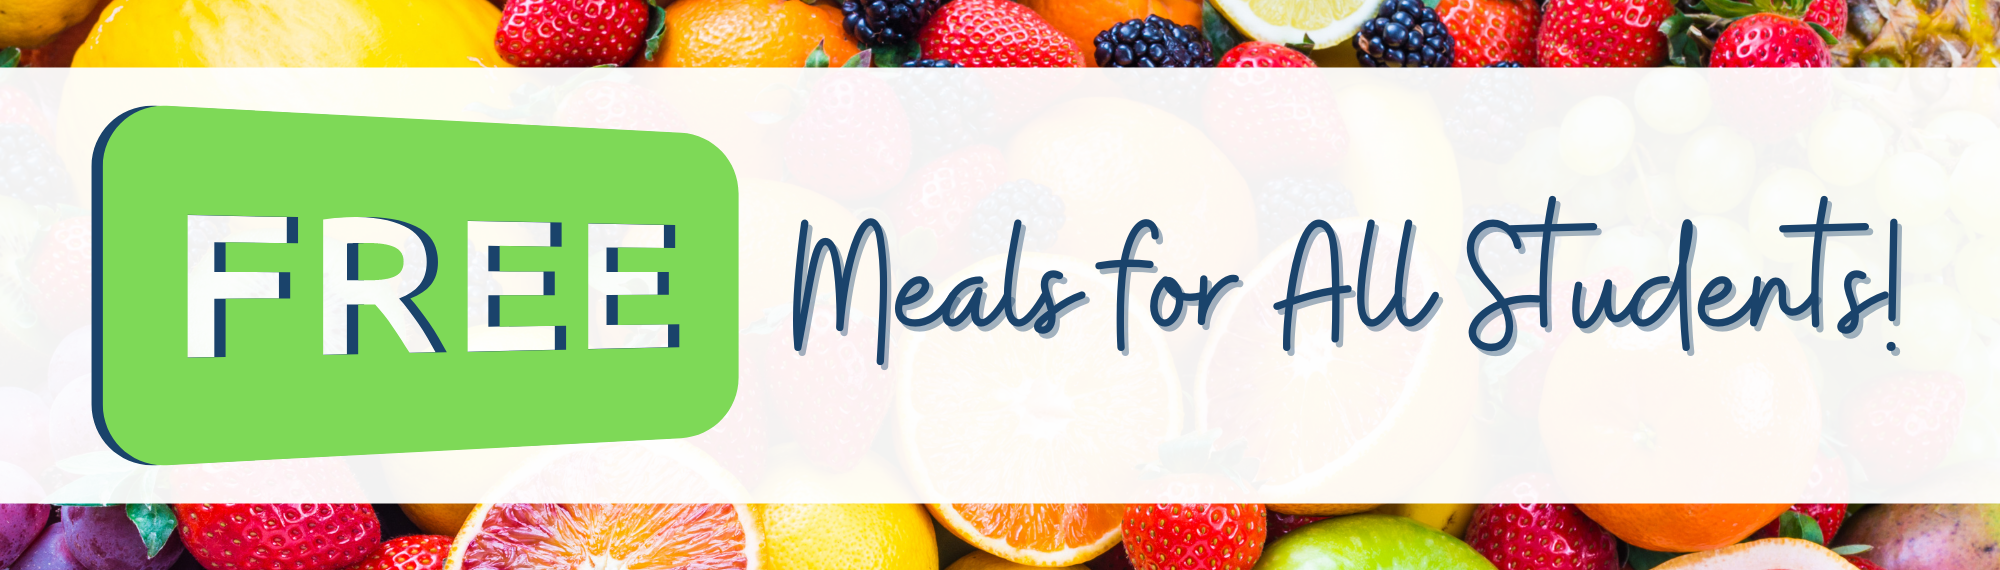 Meals for All Students